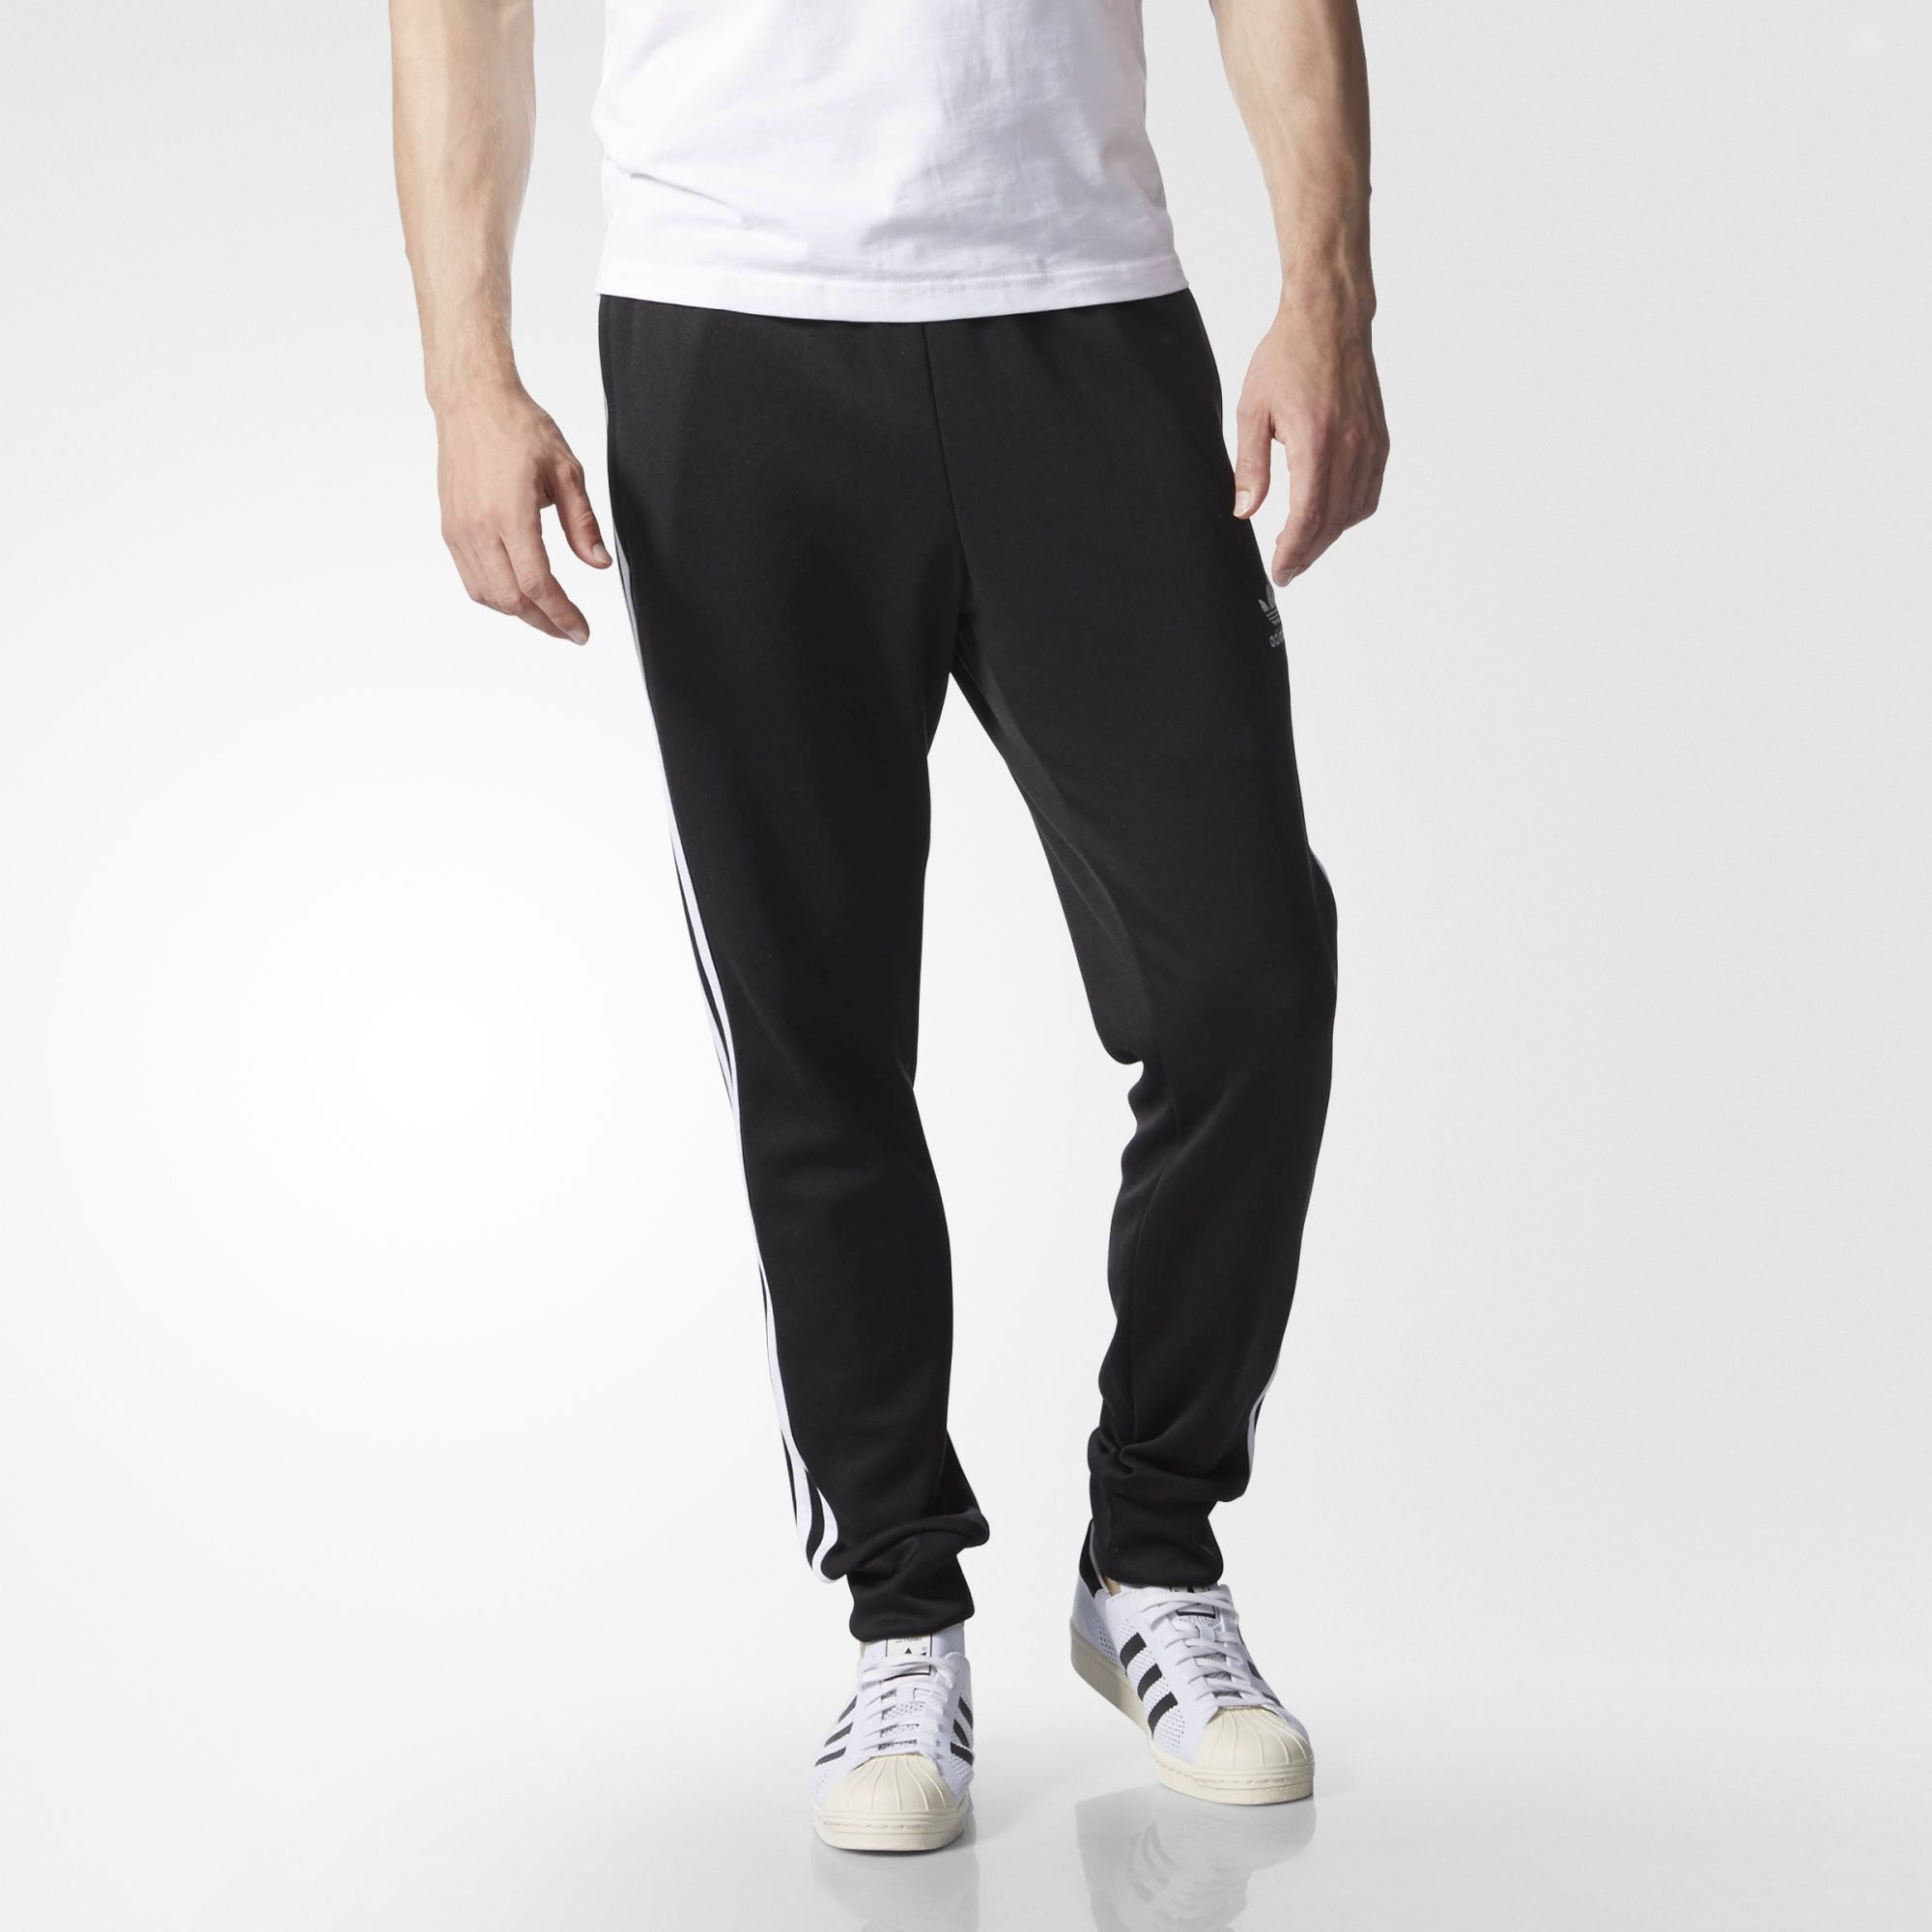 443a46de40 SST Cuffed Track Pants | Things I want | Men trousers, Adidas, Pants